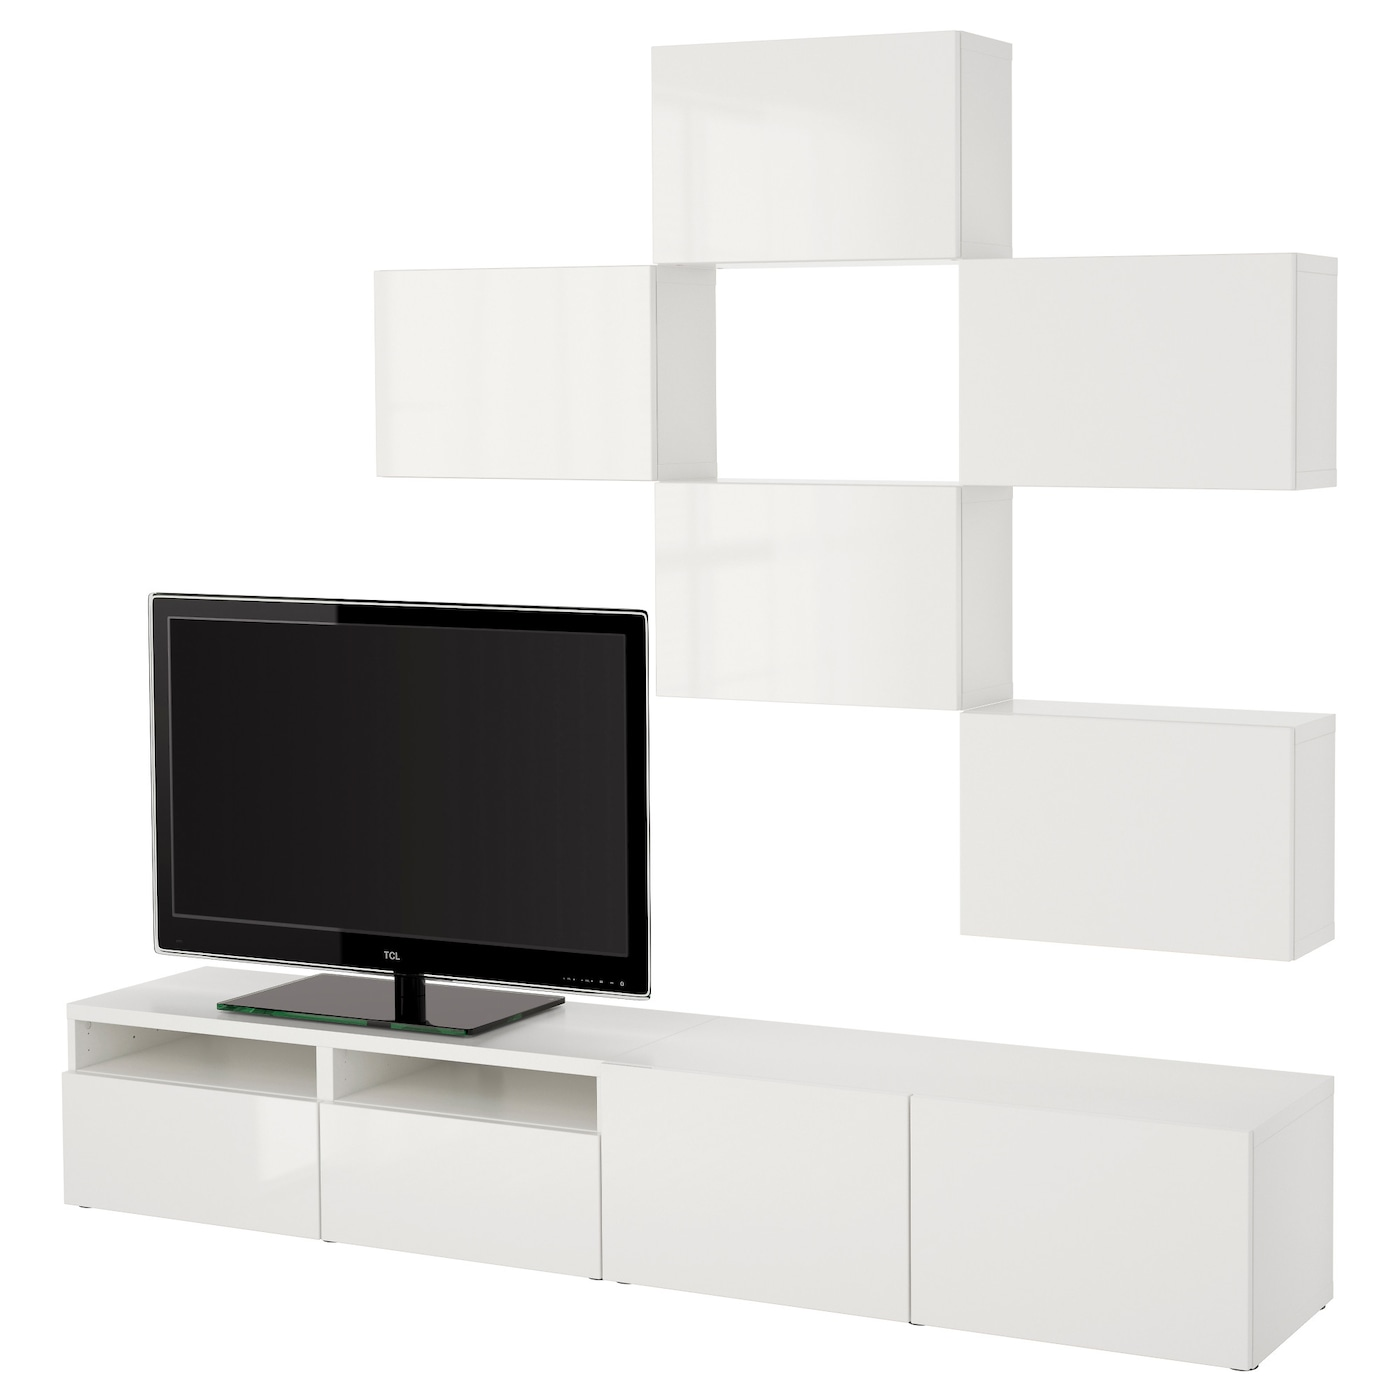 best tv storage combination white selsviken high gloss white 240x20 40x204 cm ikea. Black Bedroom Furniture Sets. Home Design Ideas